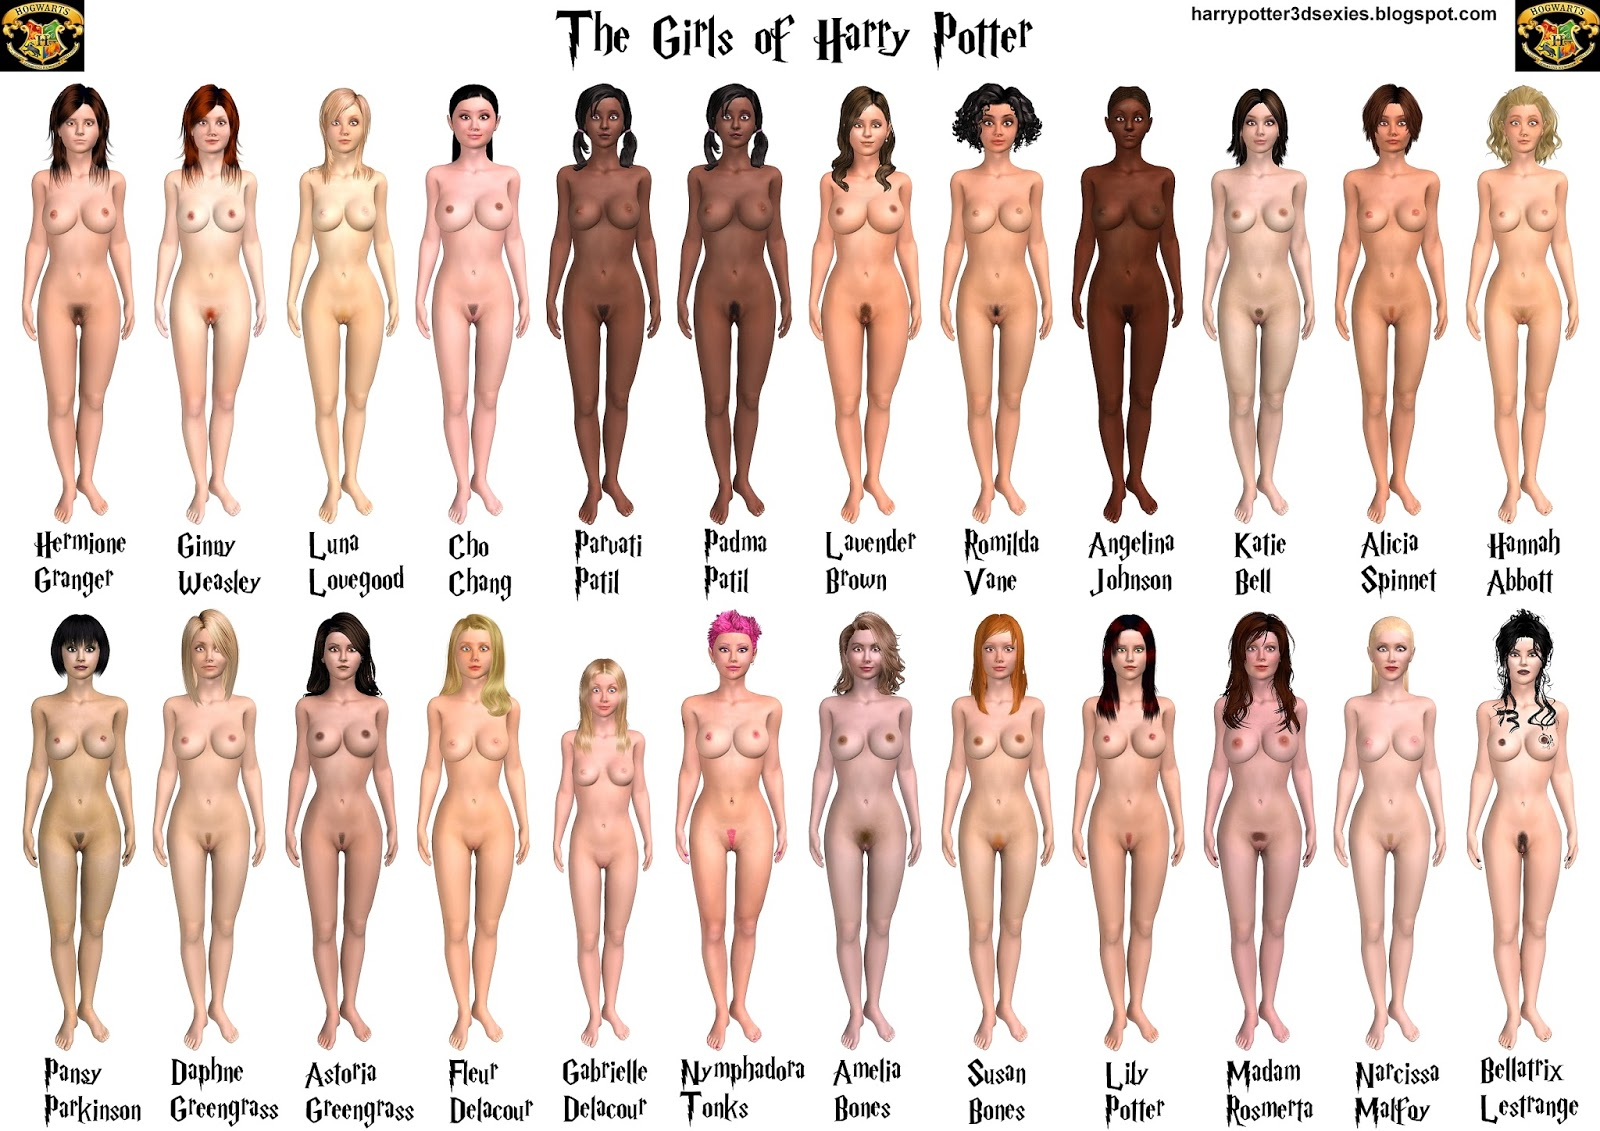 The girls of harry potter nude — 3